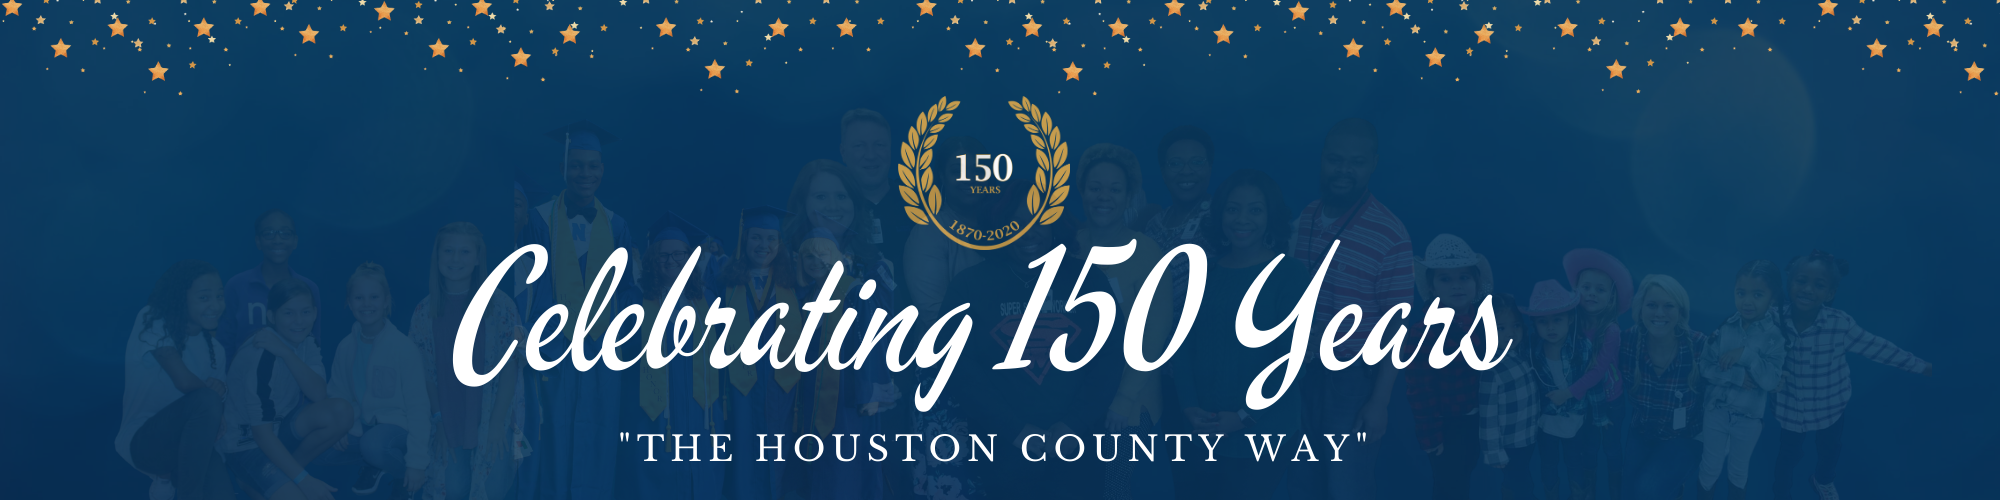 150 Year Celebration of the Houston County School District